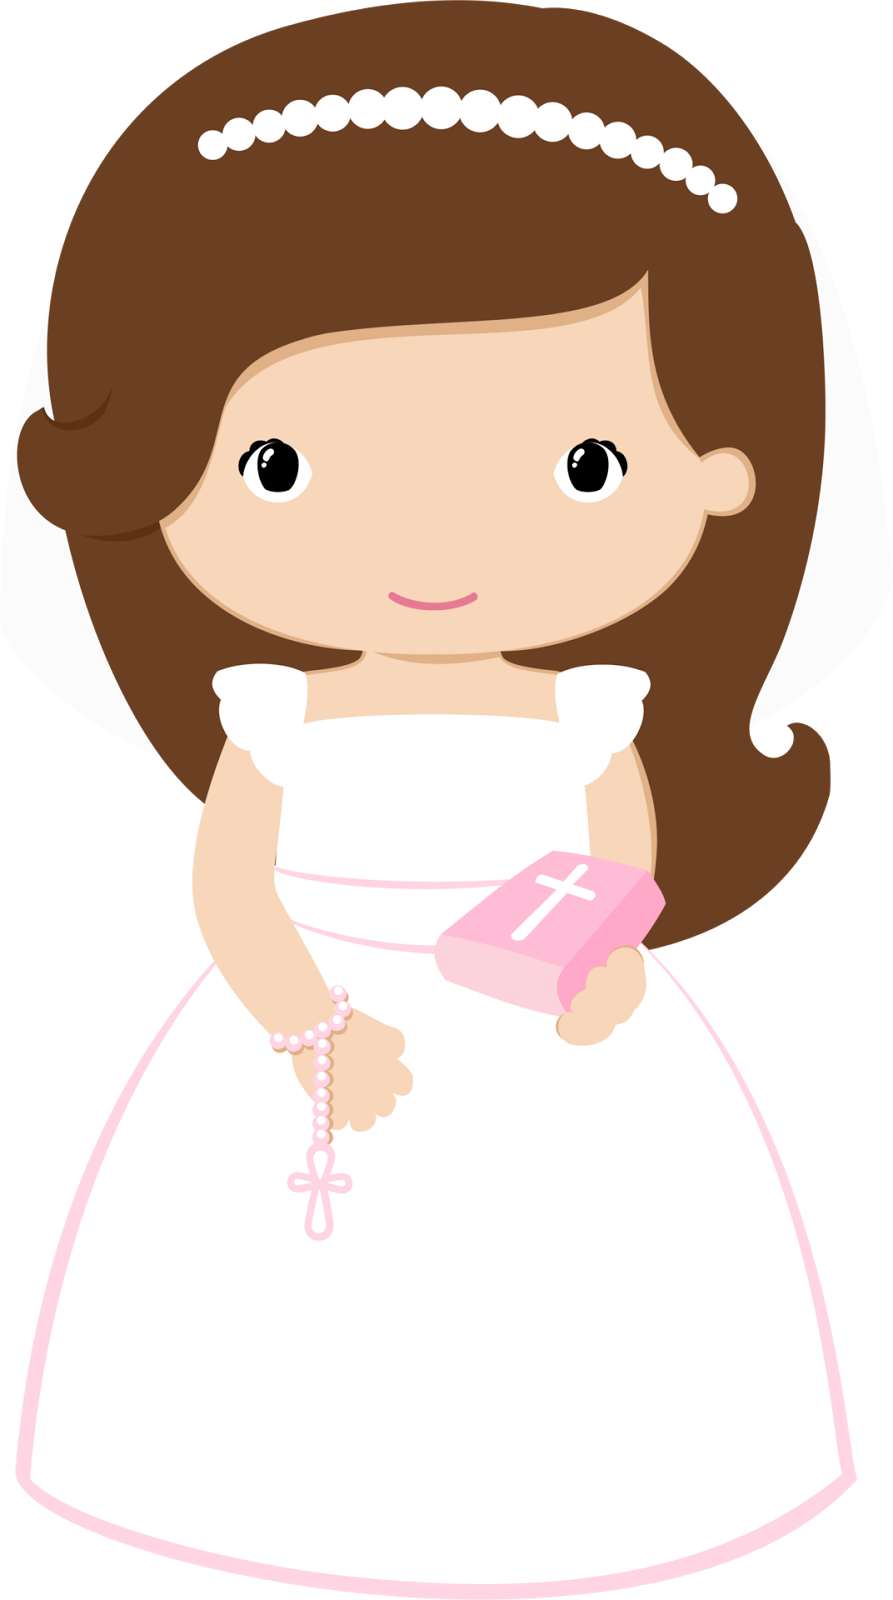 Girls in pink for. Fist clipart child